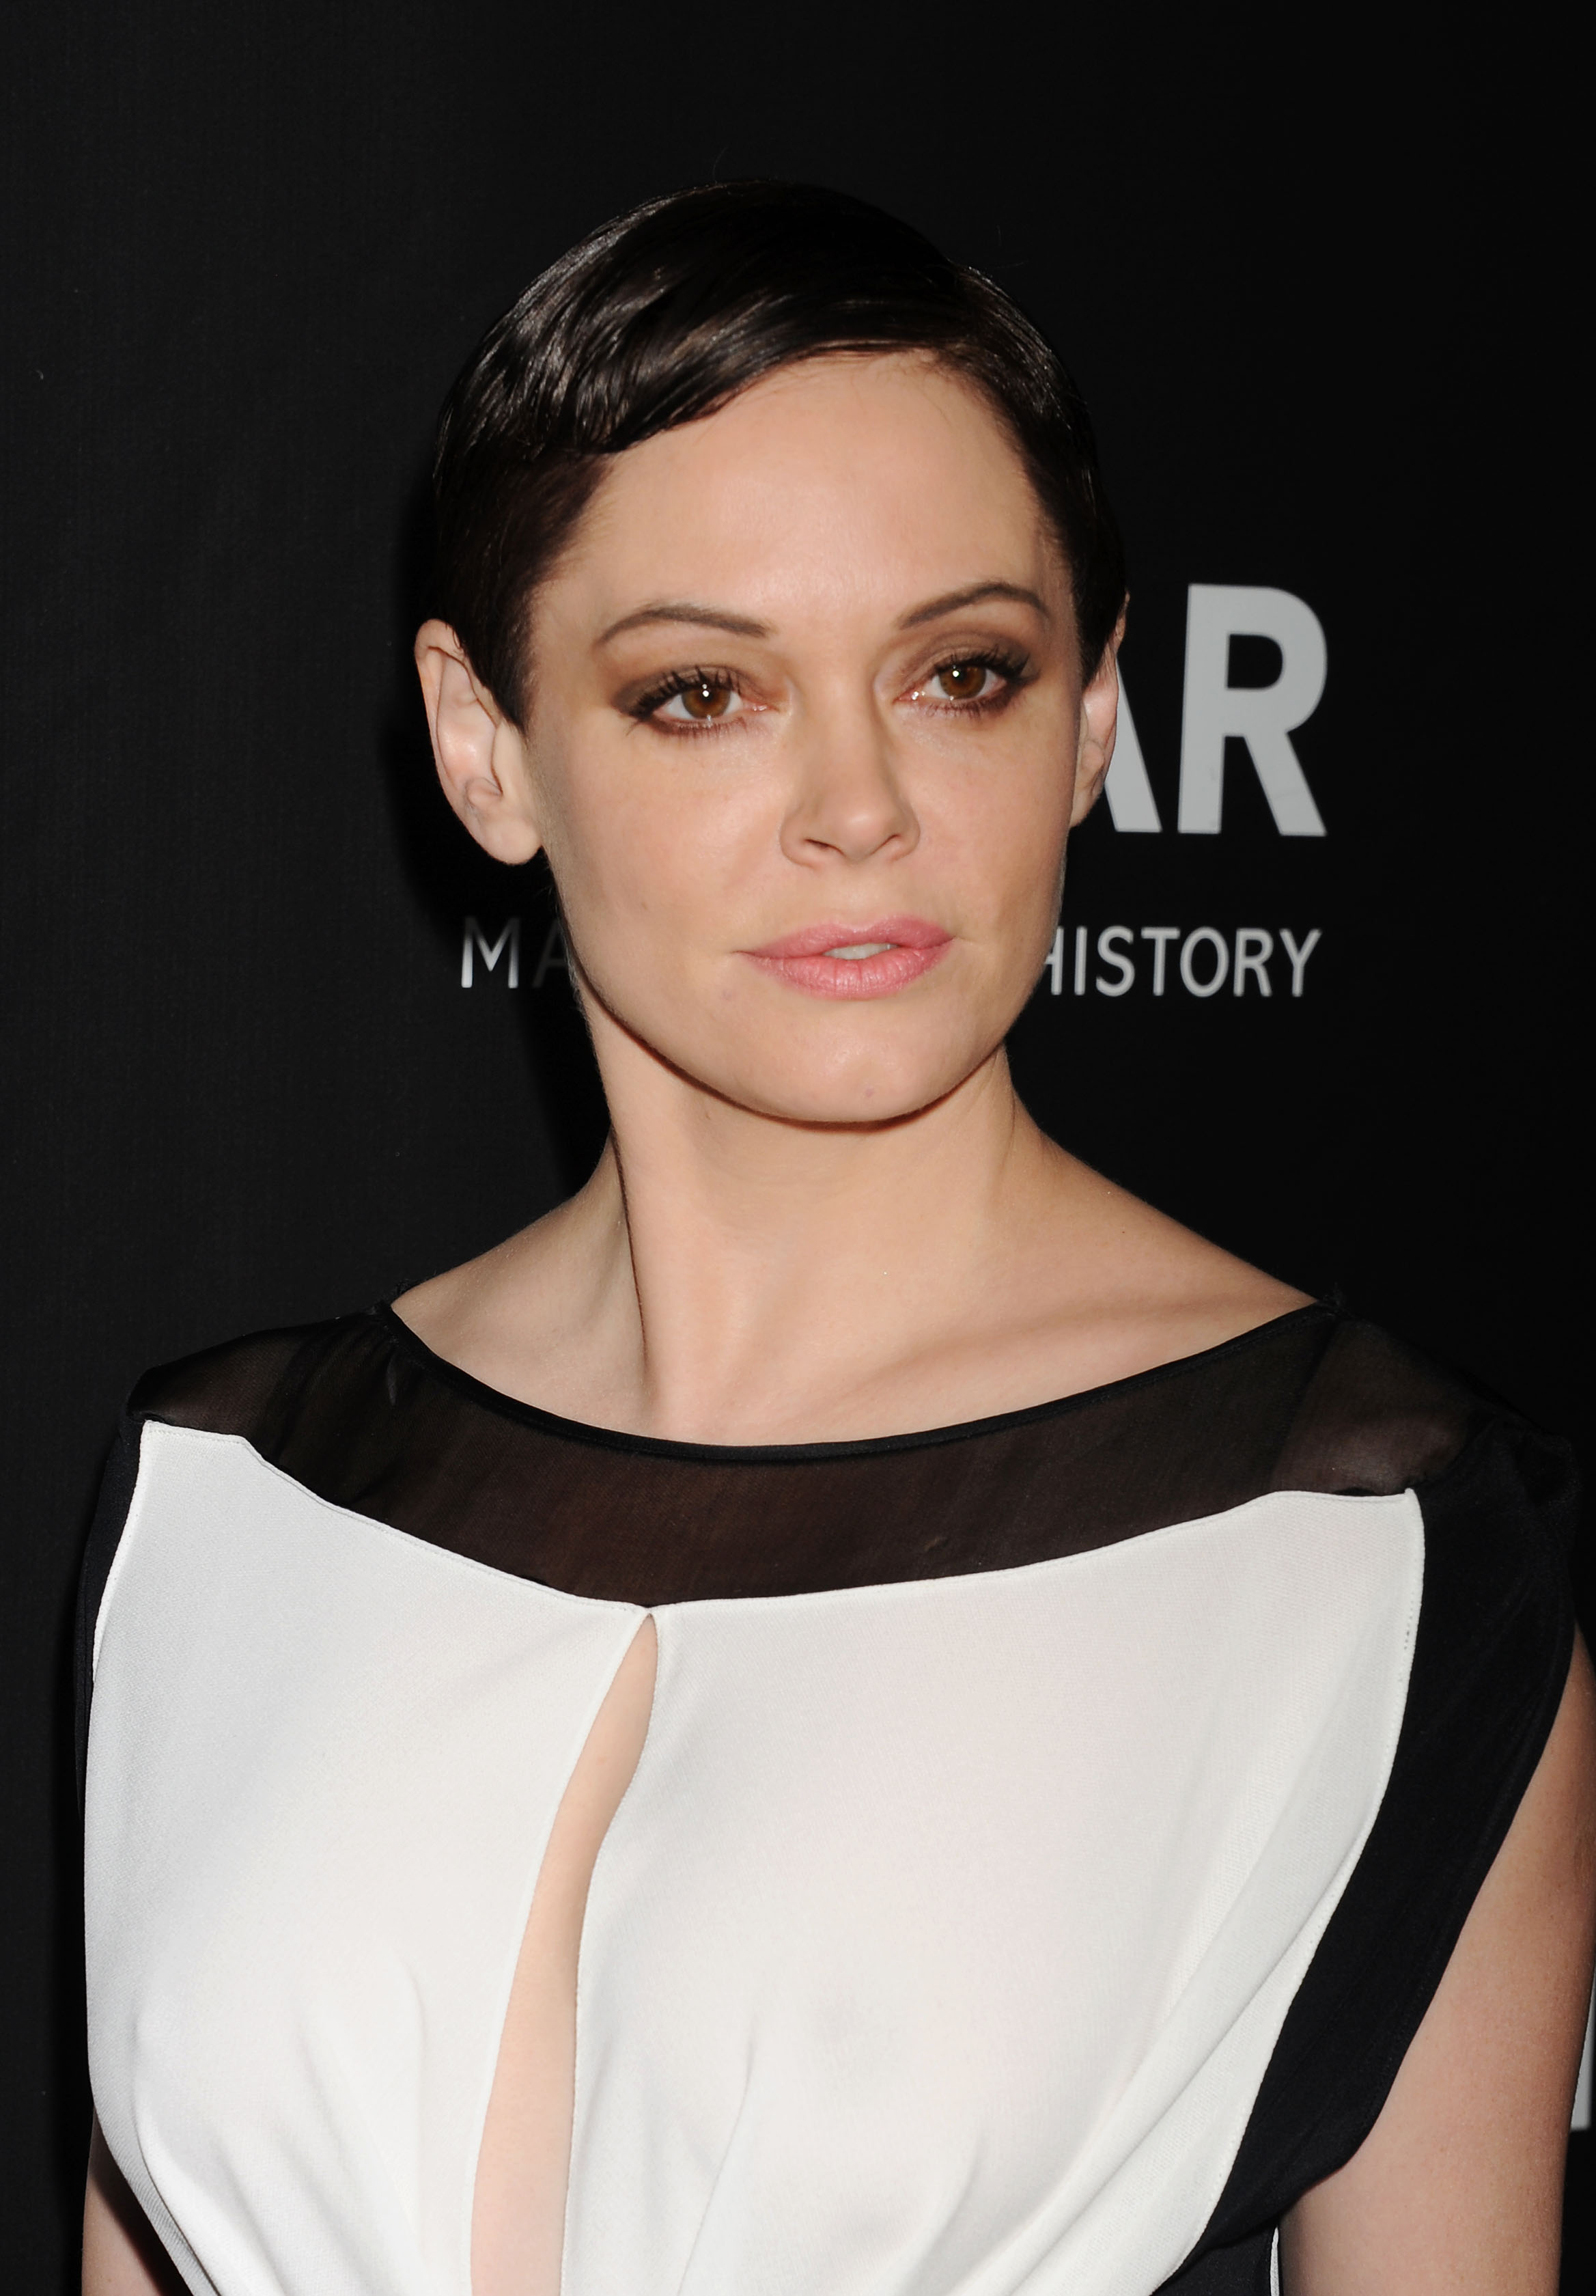 Actress Rose McGowan attends amfAR LA Inspiration Gala honoring Tom Ford at Milk Studios on October 29, 2014 in Hollywood, California.